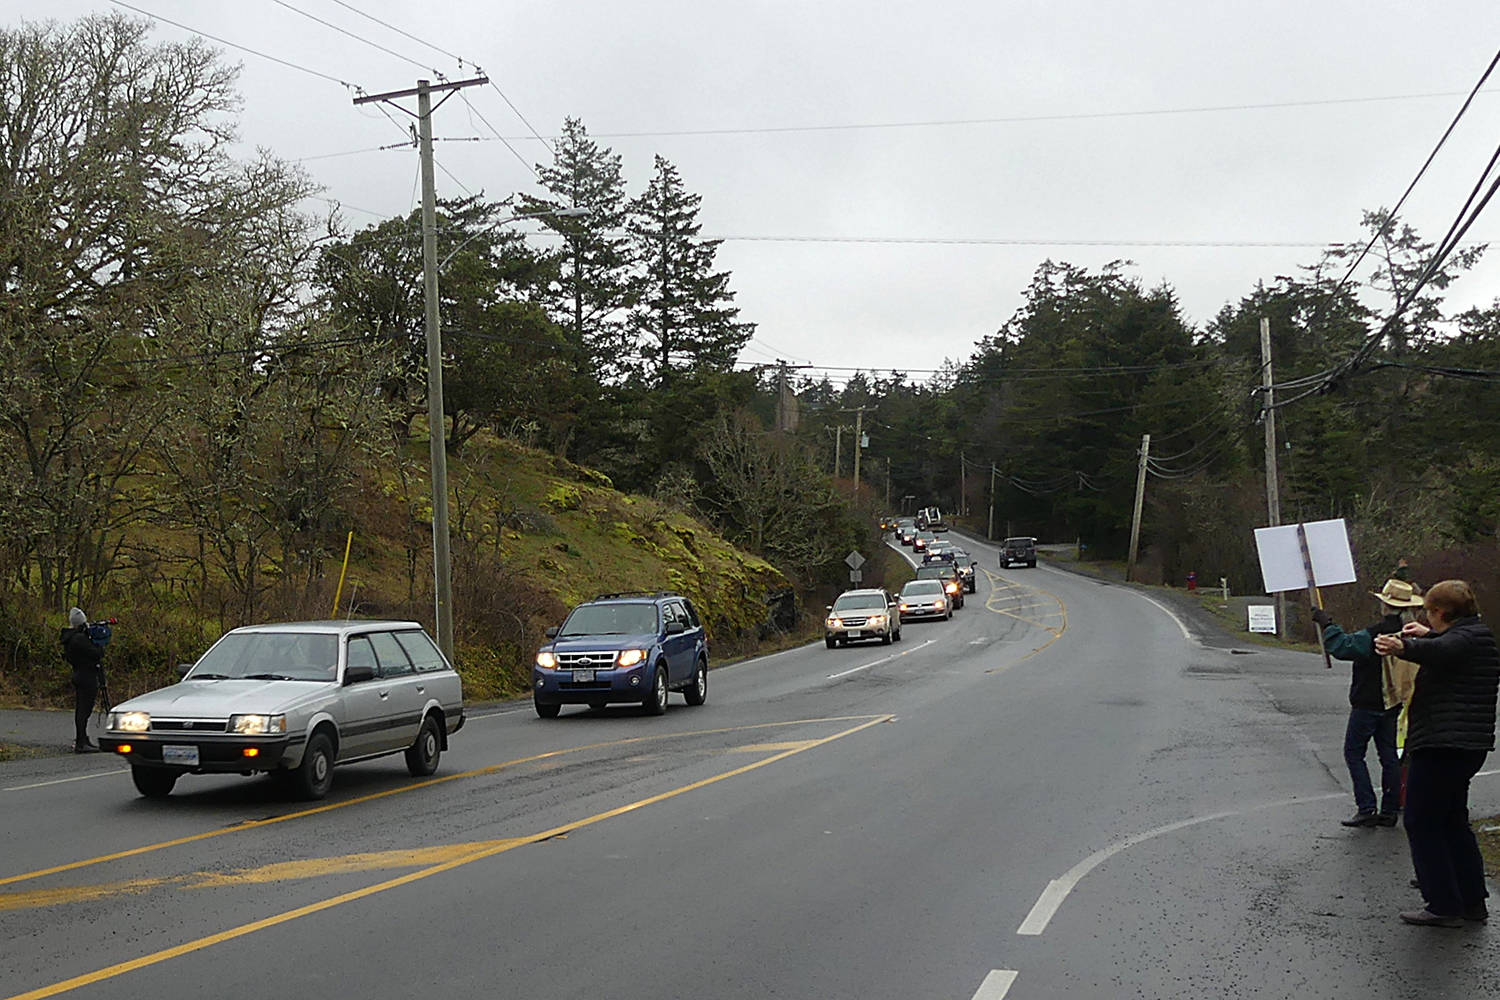 Organizers say some 100 vehicles rallied against plans by the Boys & Girls Club of Greater Victoria to sell 40 acres of its 98-acre property in Metchosin. (Barb Sawatsky/Submitted)